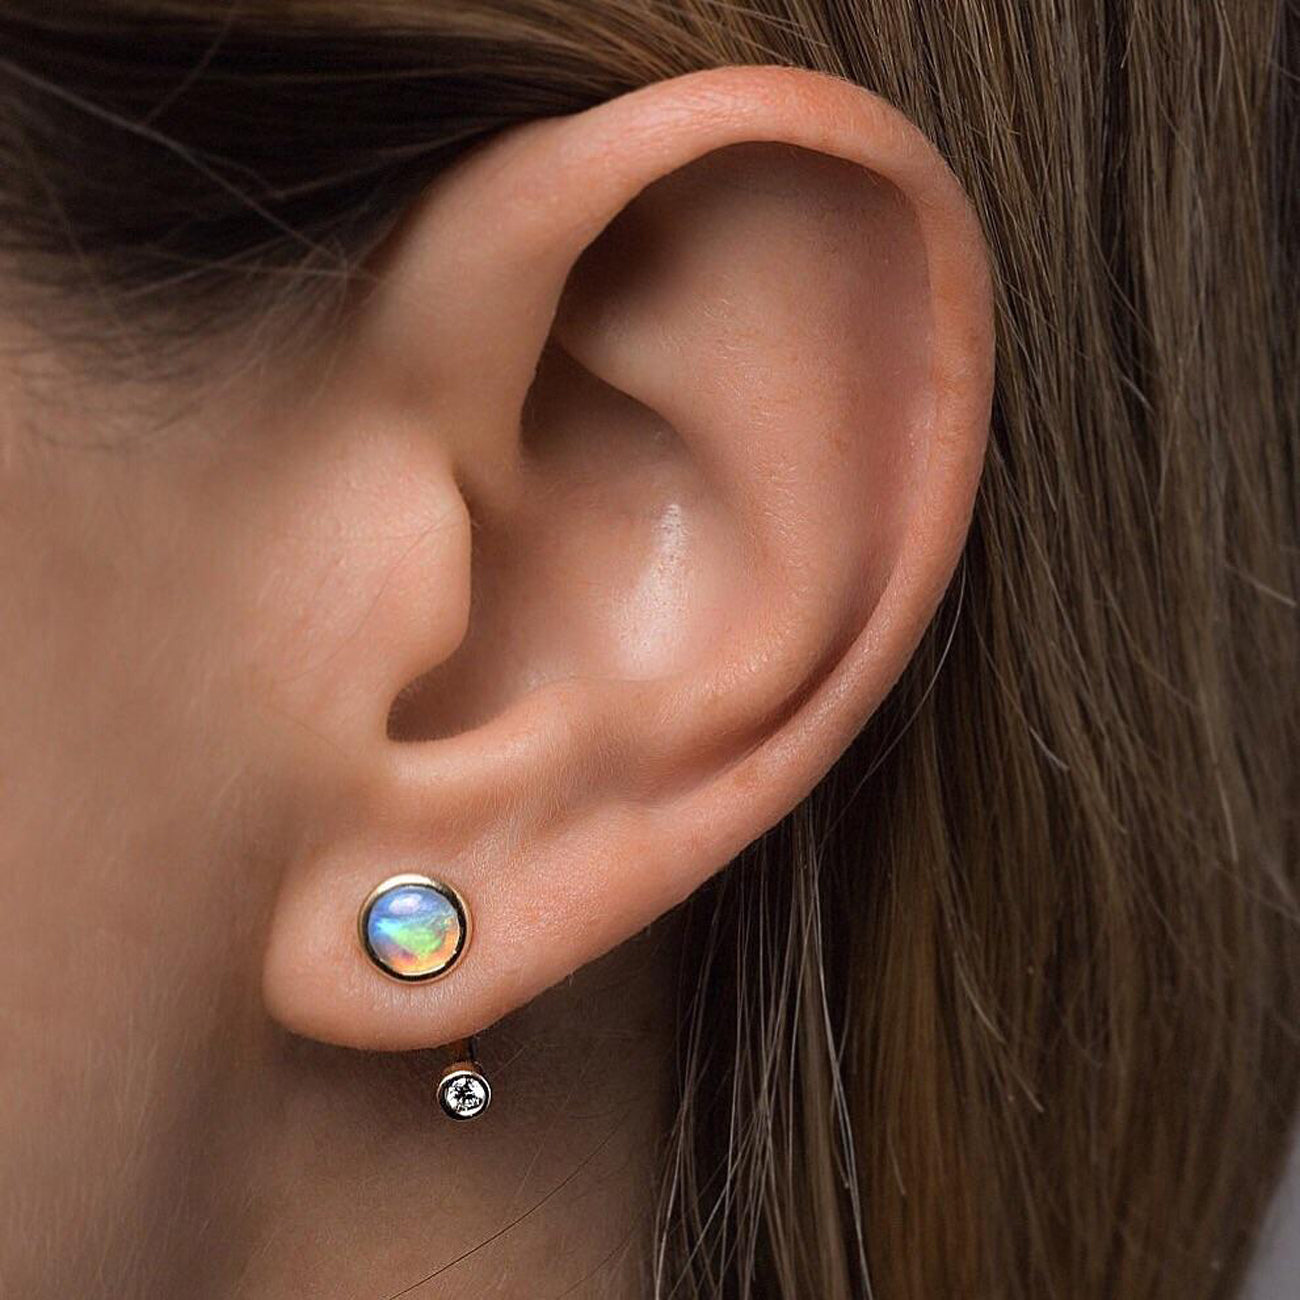 Pamela Love Gravitation Earring in 10K Gold with Opal and White Diamonds